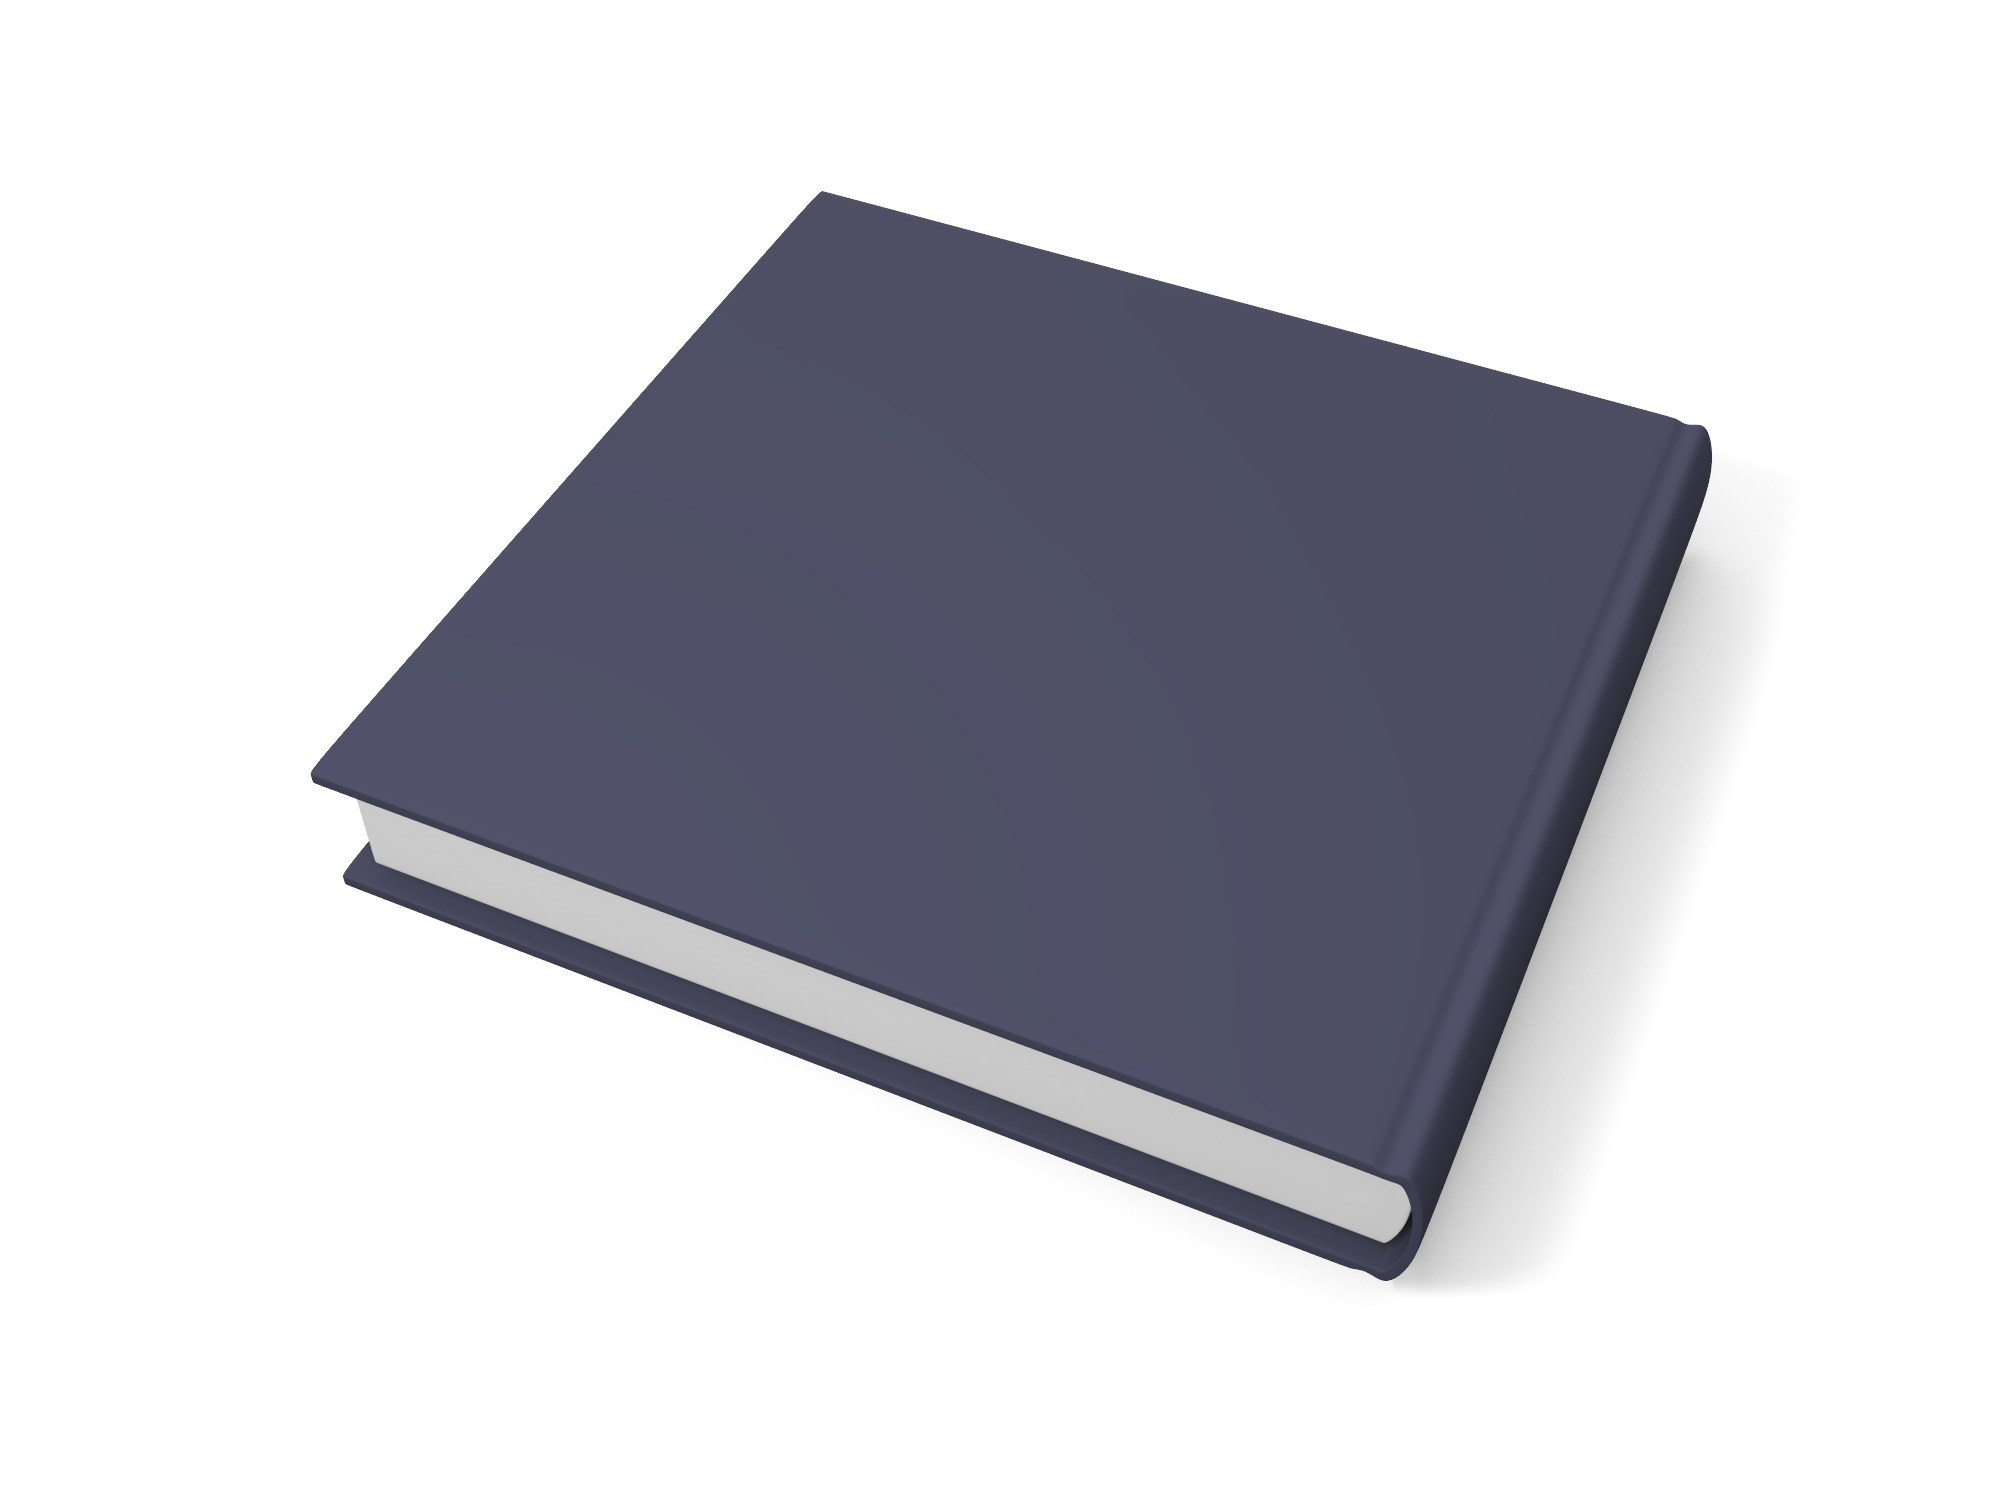 Thick square book - 3D design by assets Aug 20, 2018